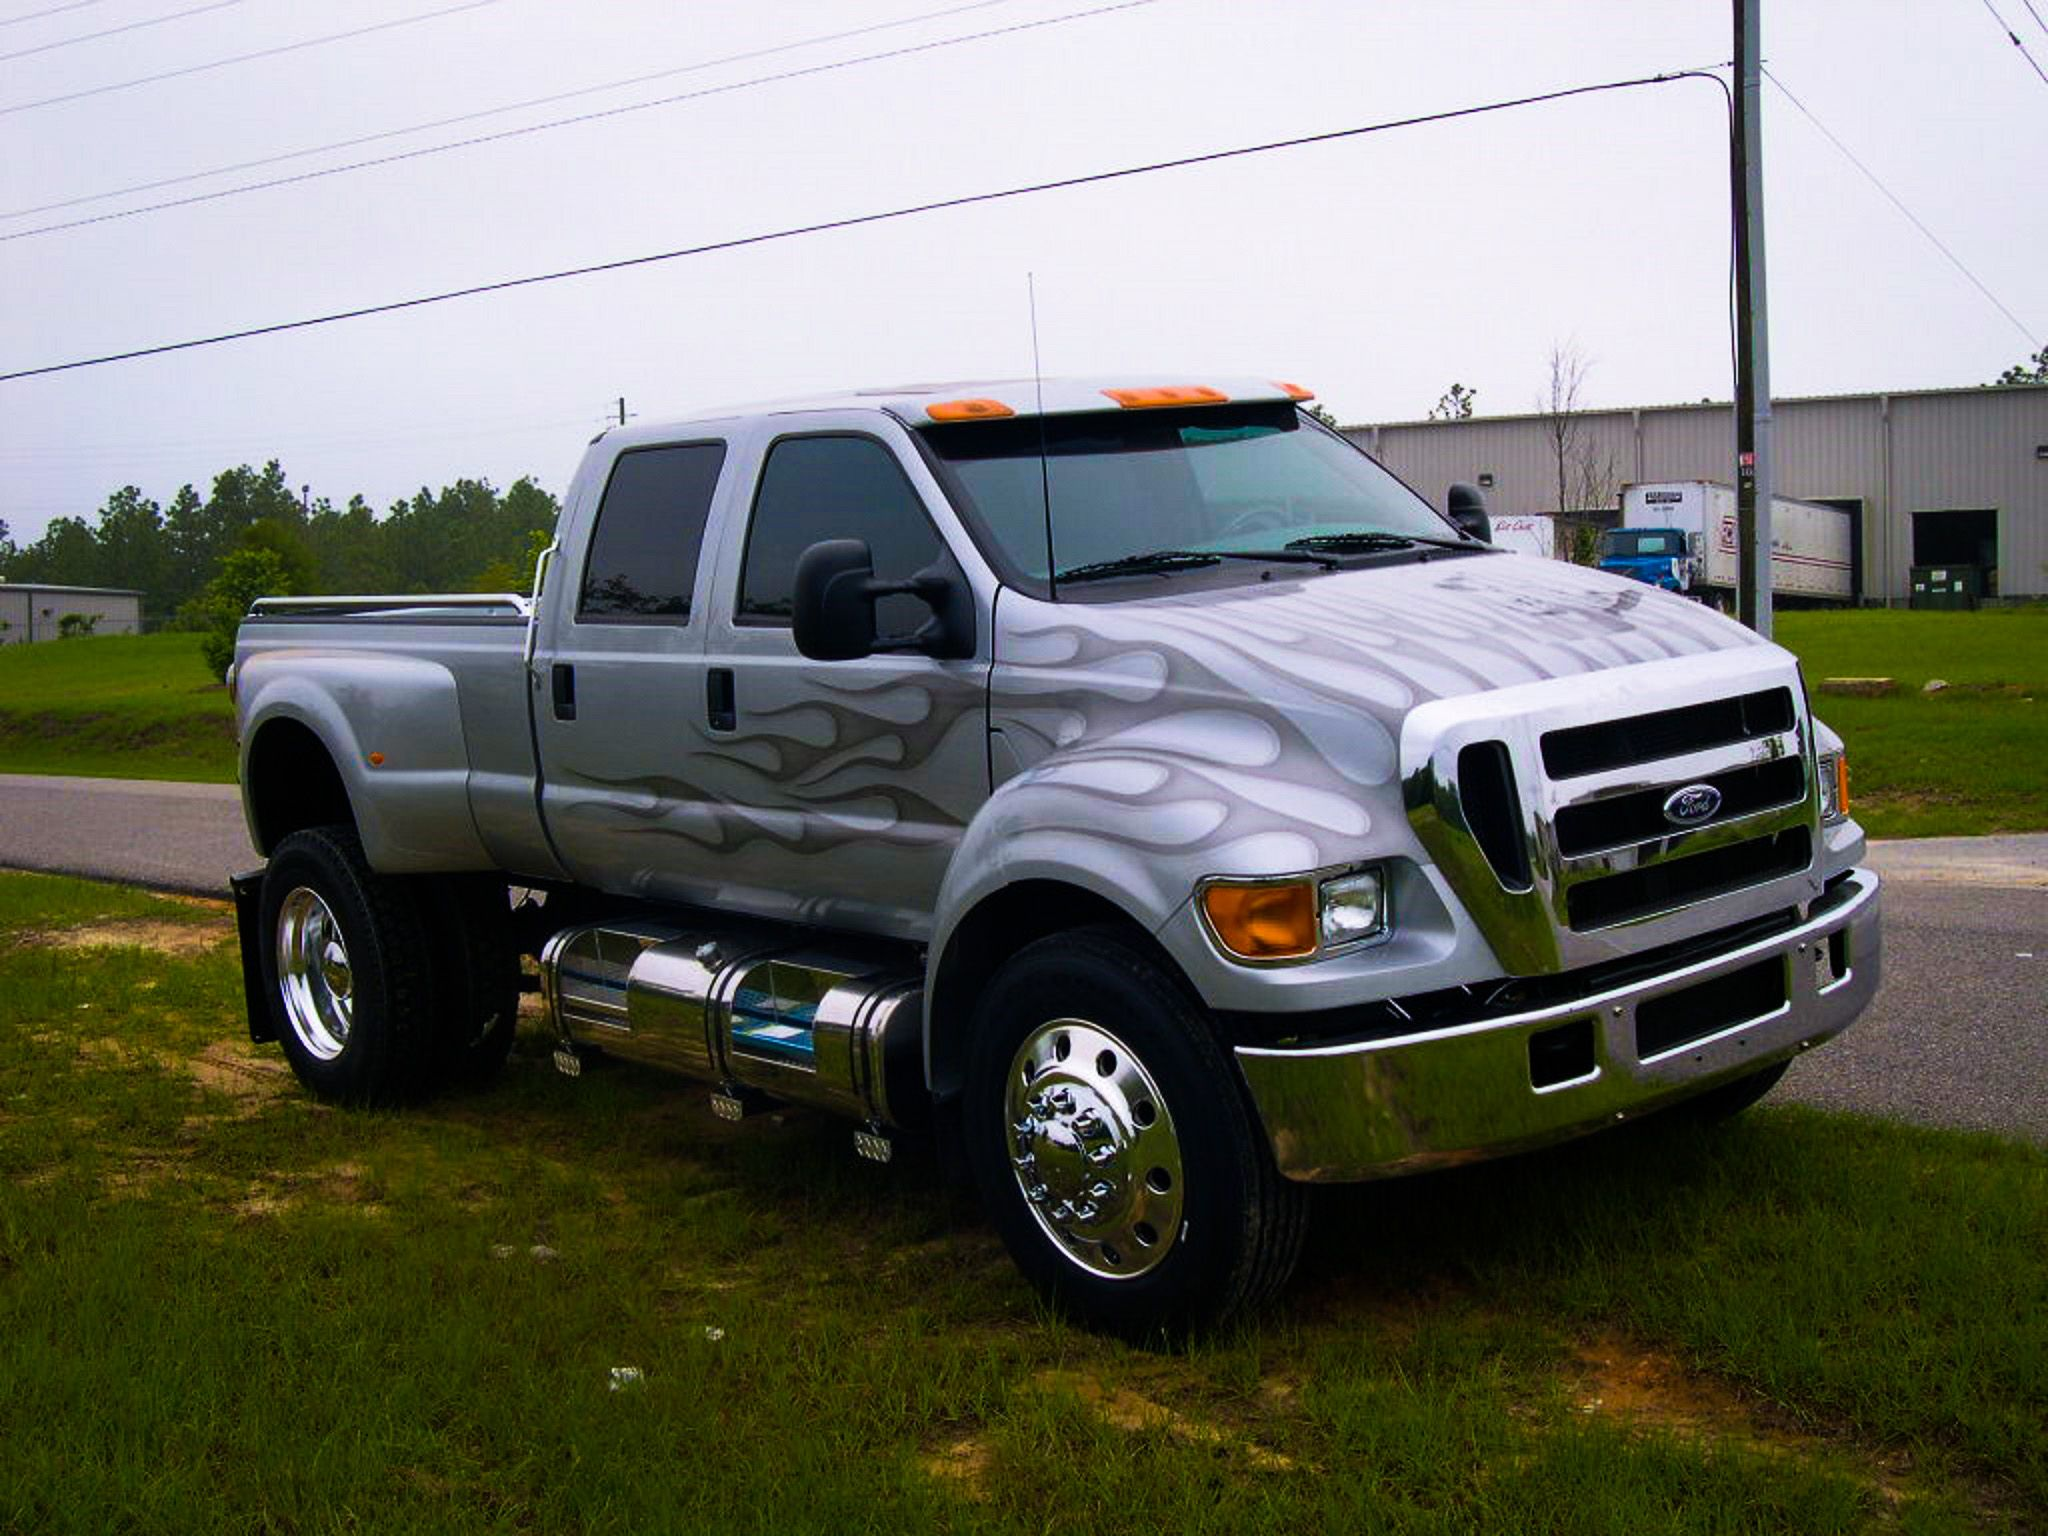 The ford f 650 concept truck is big the ford f 650 concept truck is - Ford F 650 Http Ford Com Commercial Trucks Ford F650ford Truckspickup